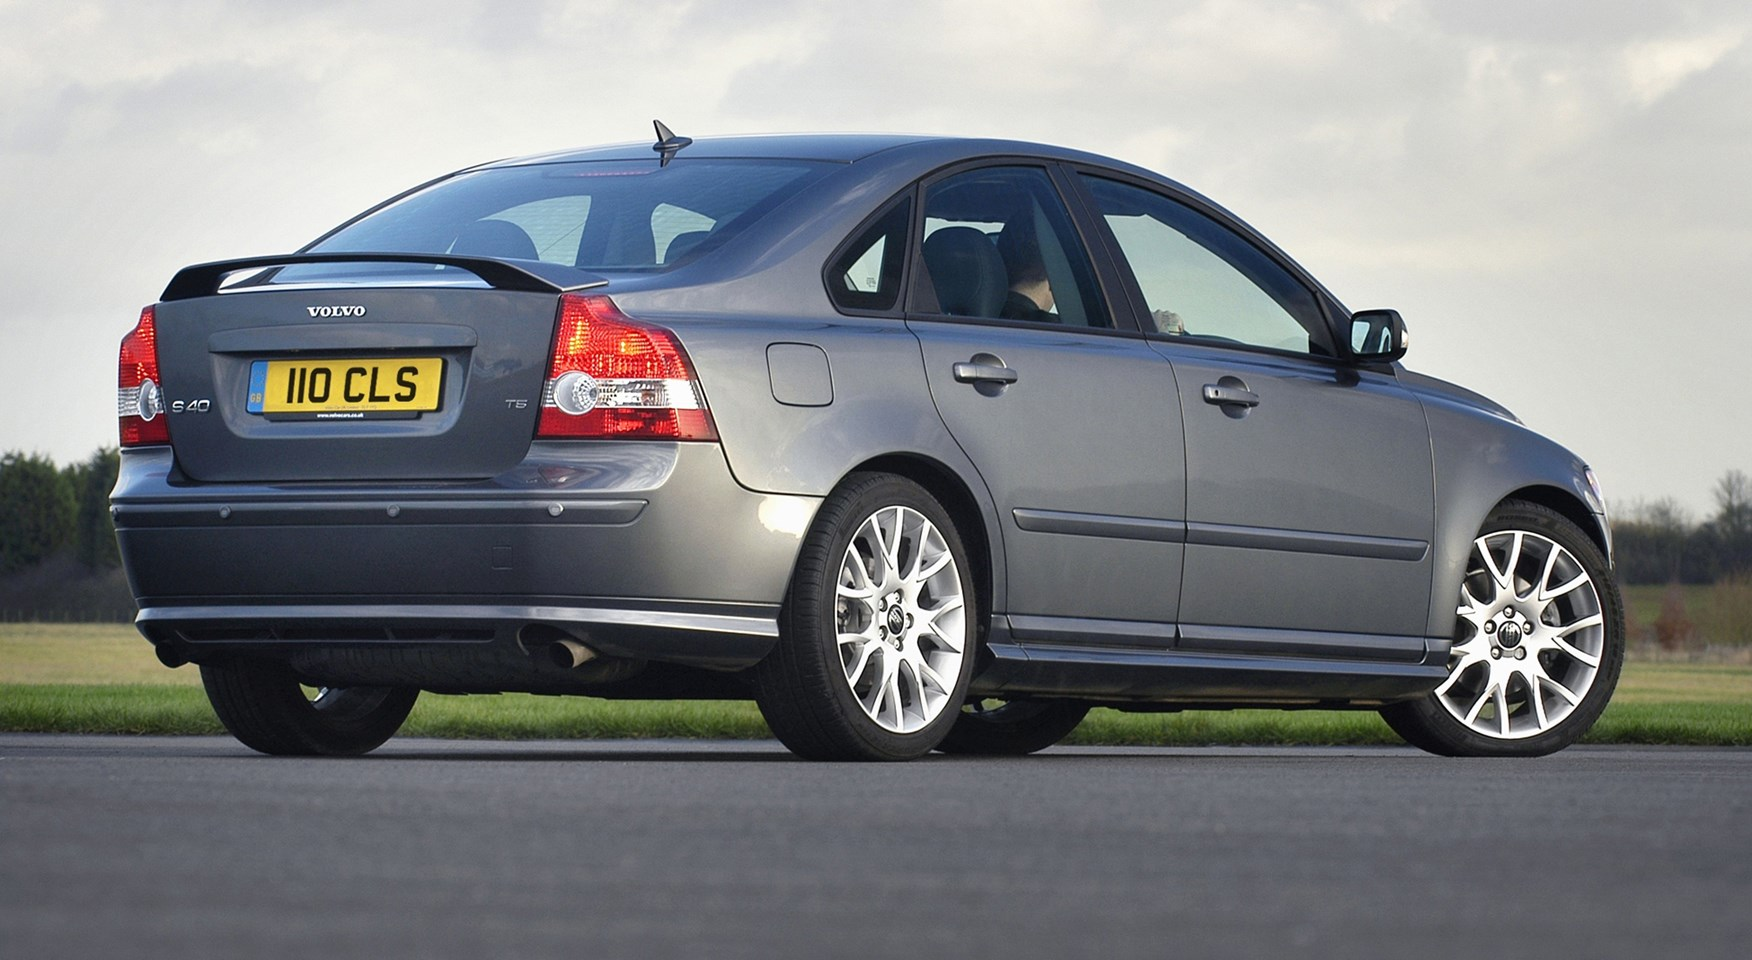 Volvo S40 Saloon 2004 2012 Driving Performance Parkers 2001 Engine Diagram Car Interior Design How Much Is It To Insure